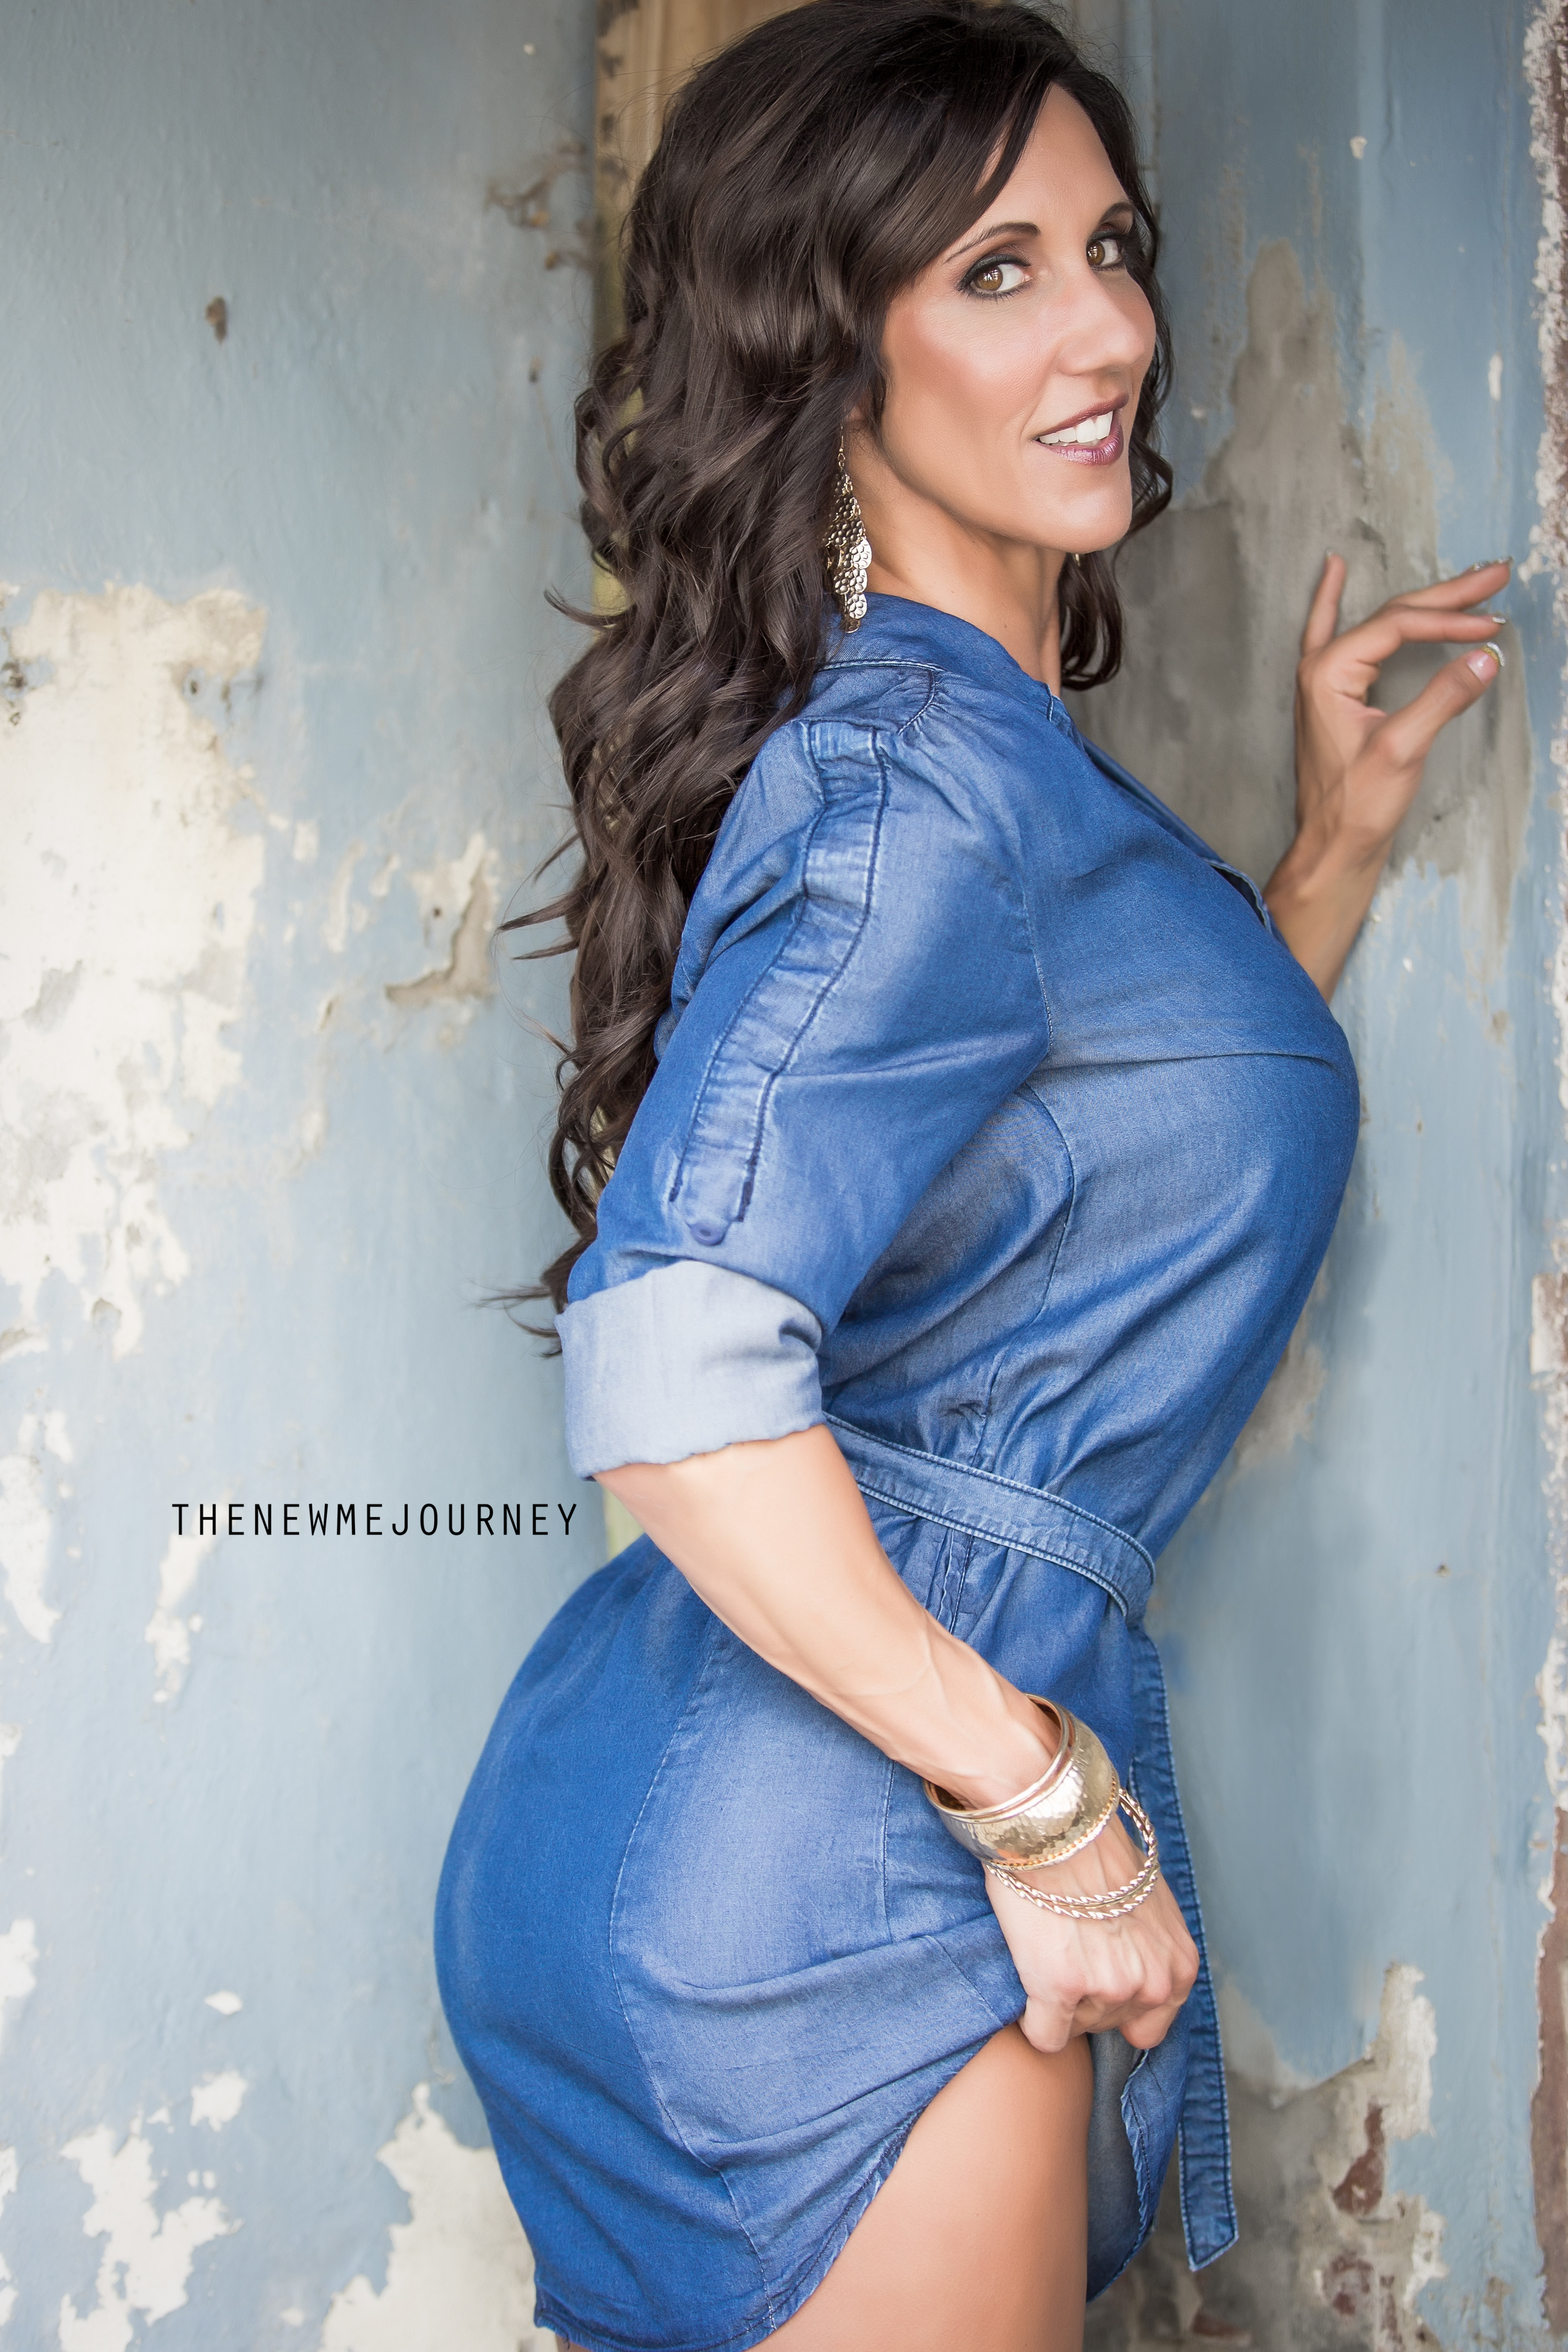 amy waters wbff diva professional fitness model co owner of shredd lee summit kansas city missouri photographer thenewmejourney fitness and physique photography